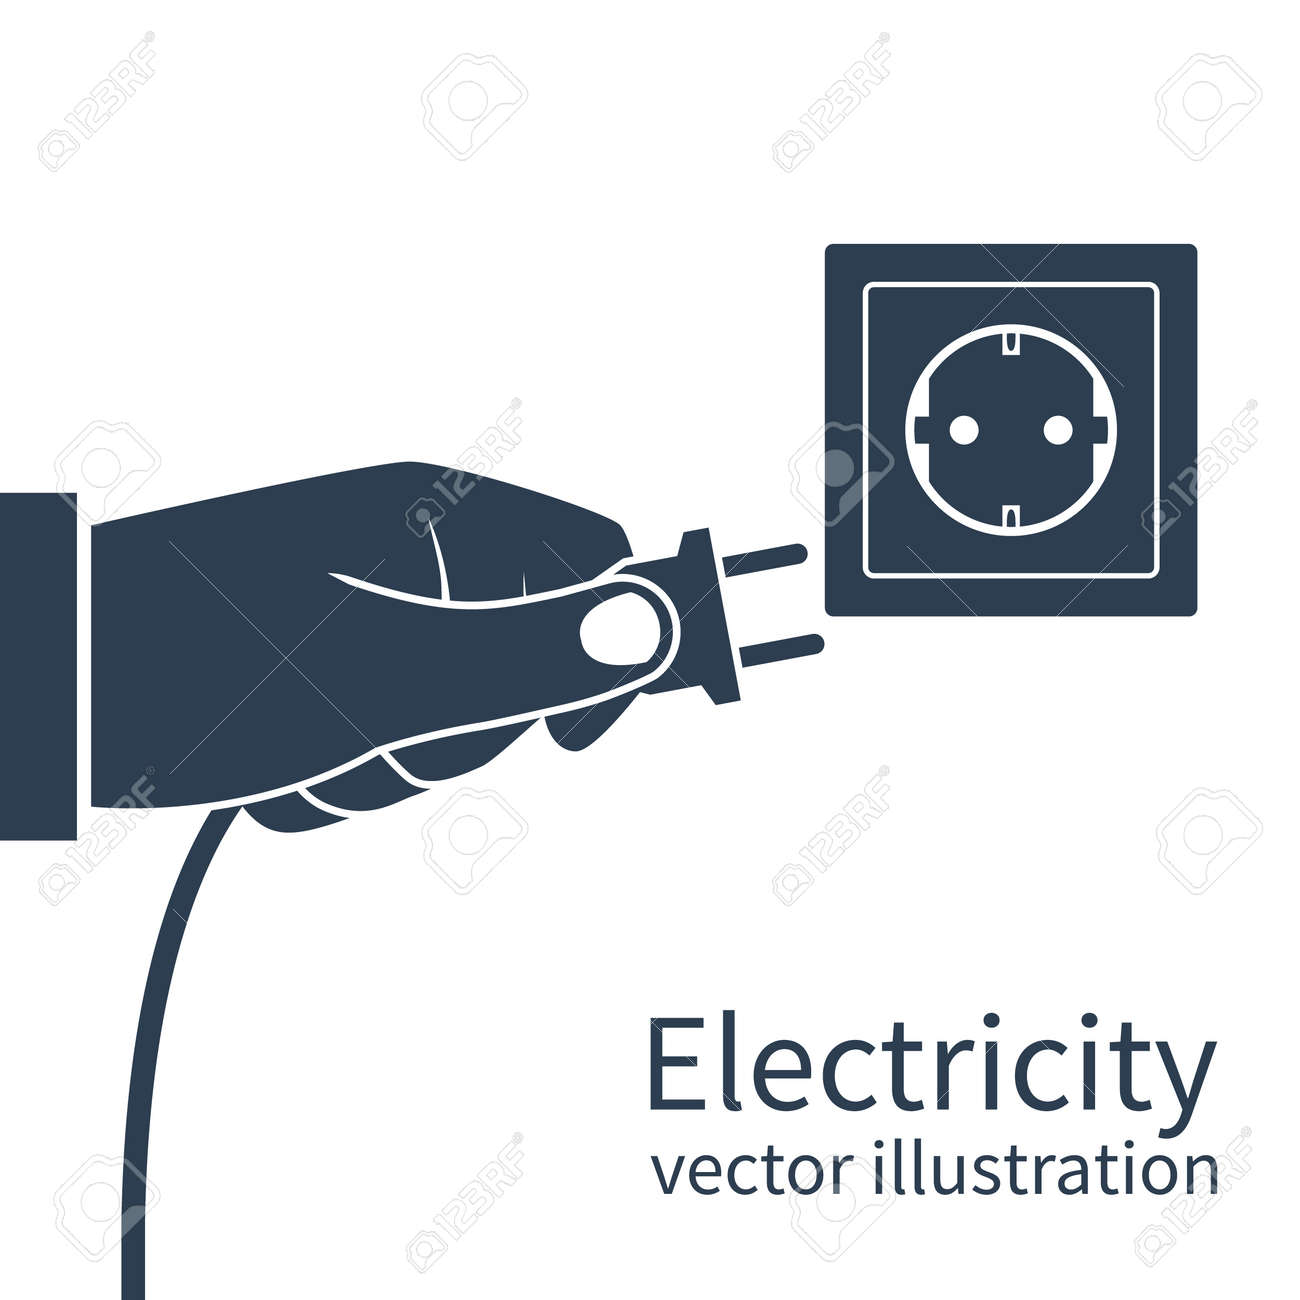 Electric Power Plug Holding In Hand, Black Icon Isolated On White ... for unplug icon  192sfw